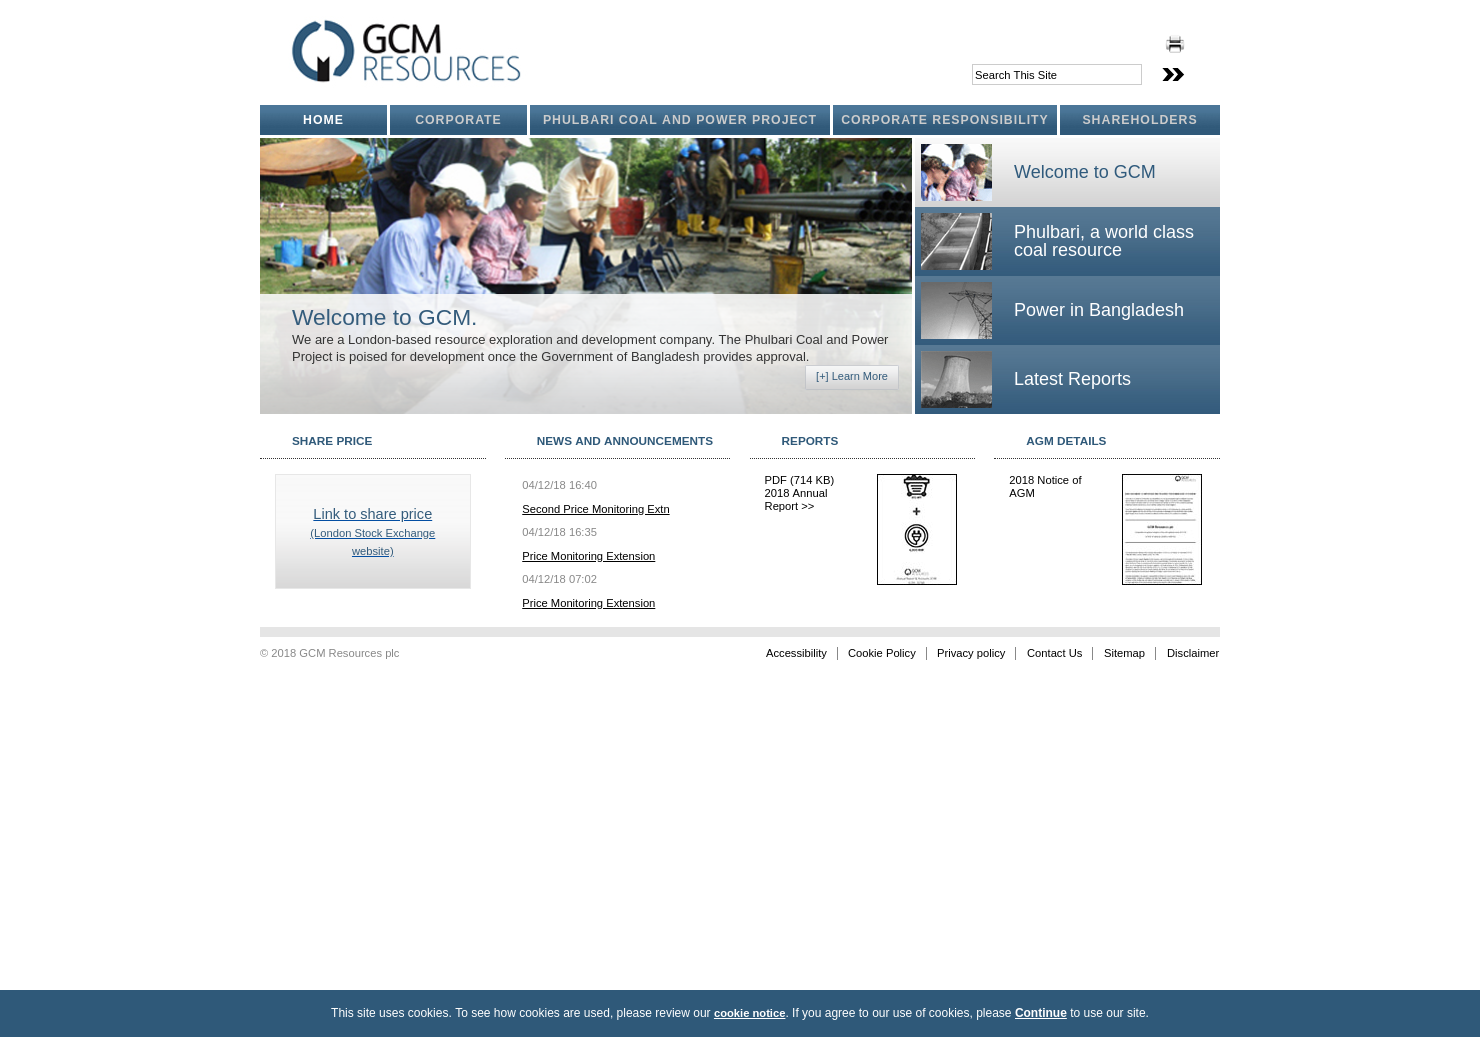 GCM Resources Home Page